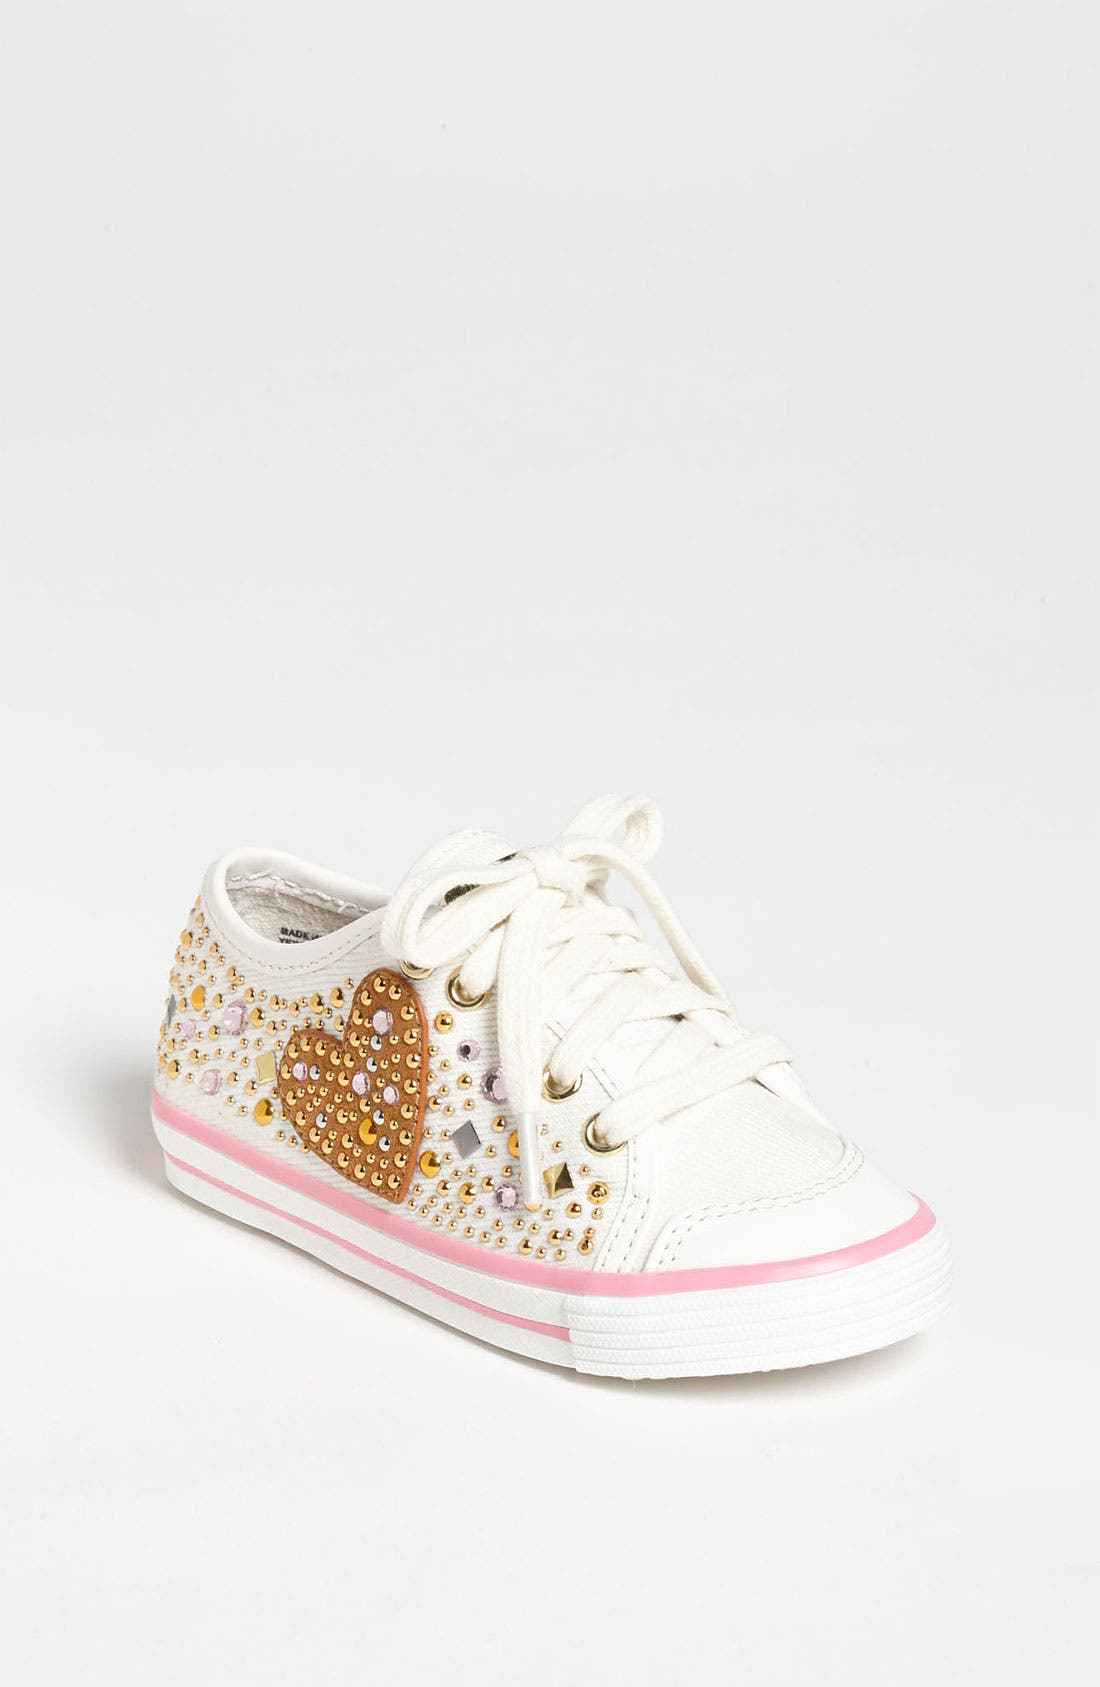 Alternate Image 1 Selected - KORS Michael Kors 'Firecracker' Sneaker (Toddler)